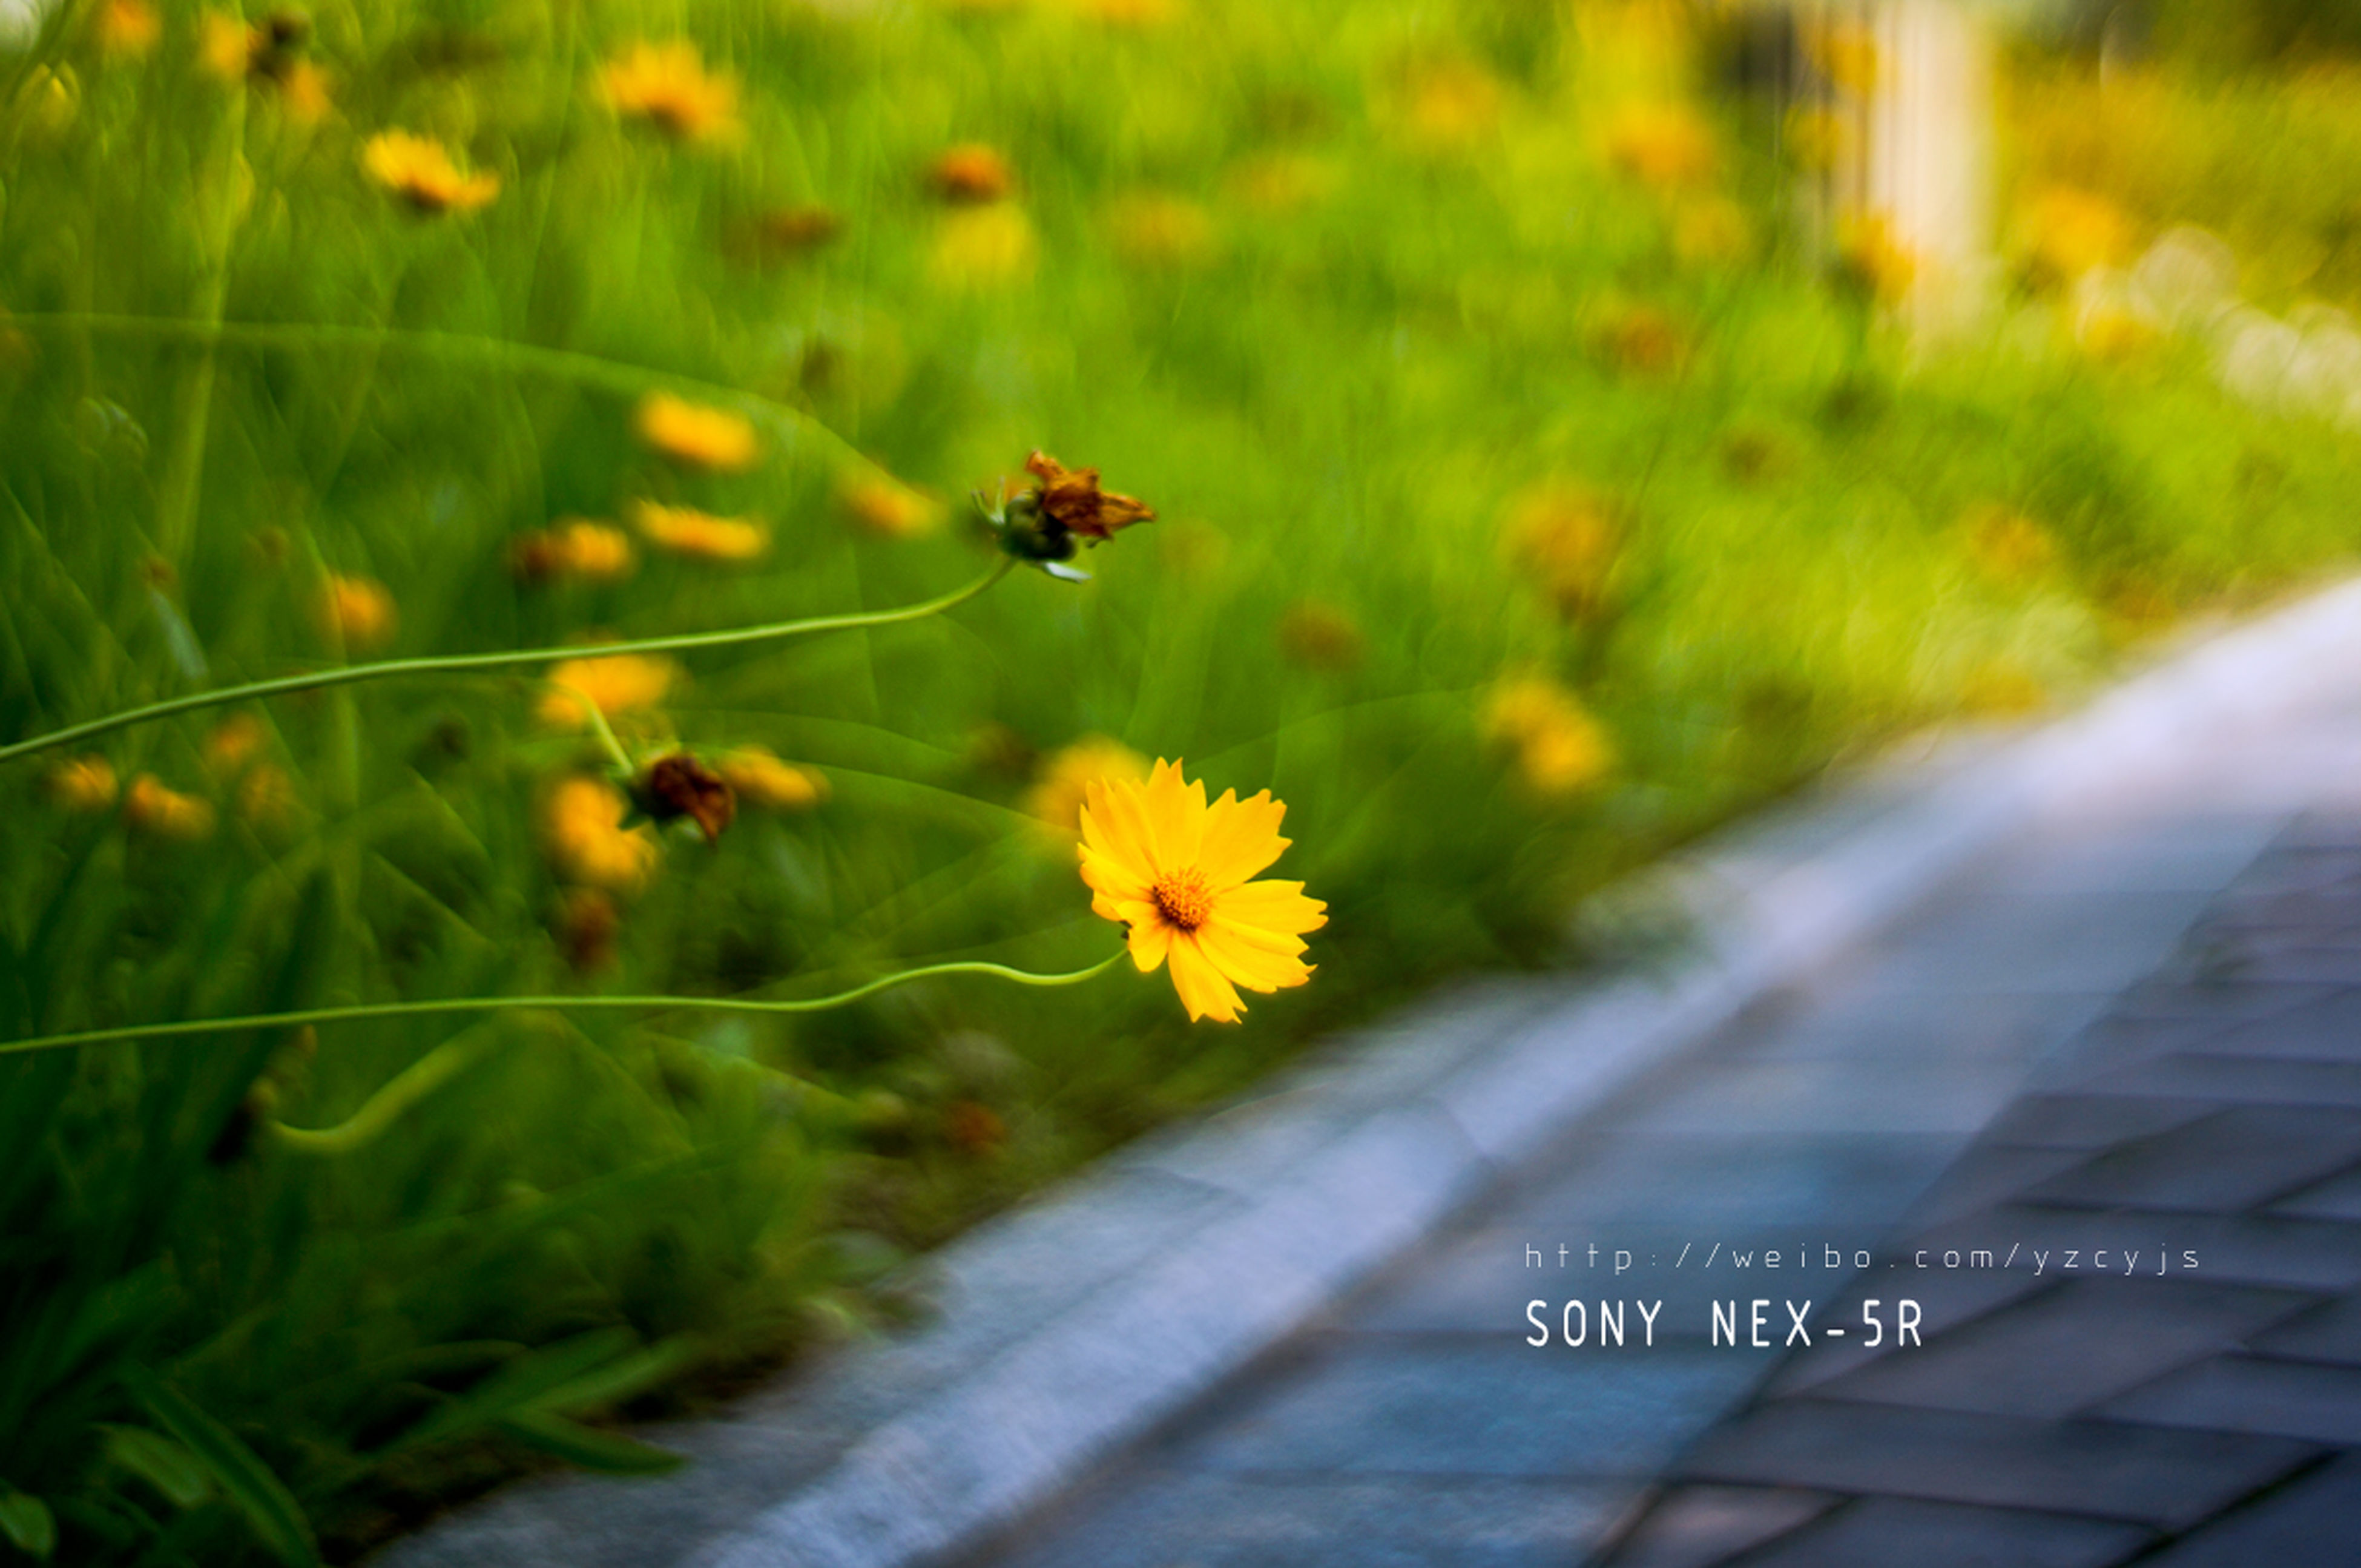 flower, insect, growth, fragility, yellow, freshness, plant, beauty in nature, nature, petal, one animal, animal themes, transportation, focus on foreground, green color, close-up, animals in the wild, wildlife, flower head, selective focus